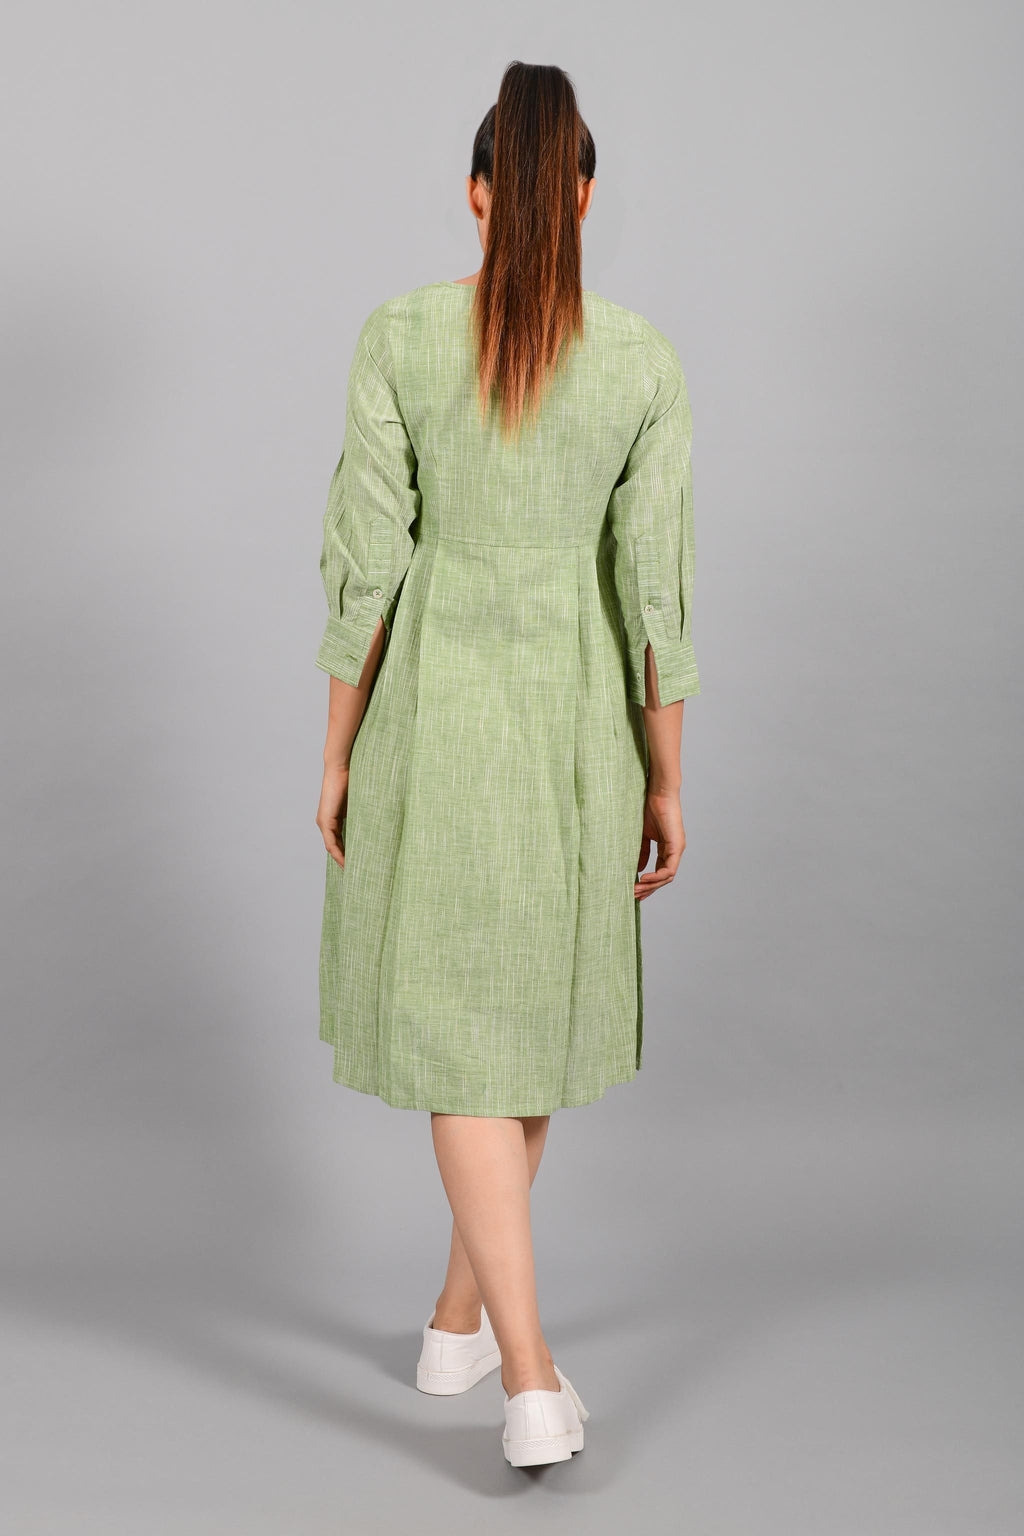 Back pose of an Indian female womenswear fashion model in a space dyed olive green handspun and handwoven khadi cotton pleated dress-kurta by Cotton Rack.